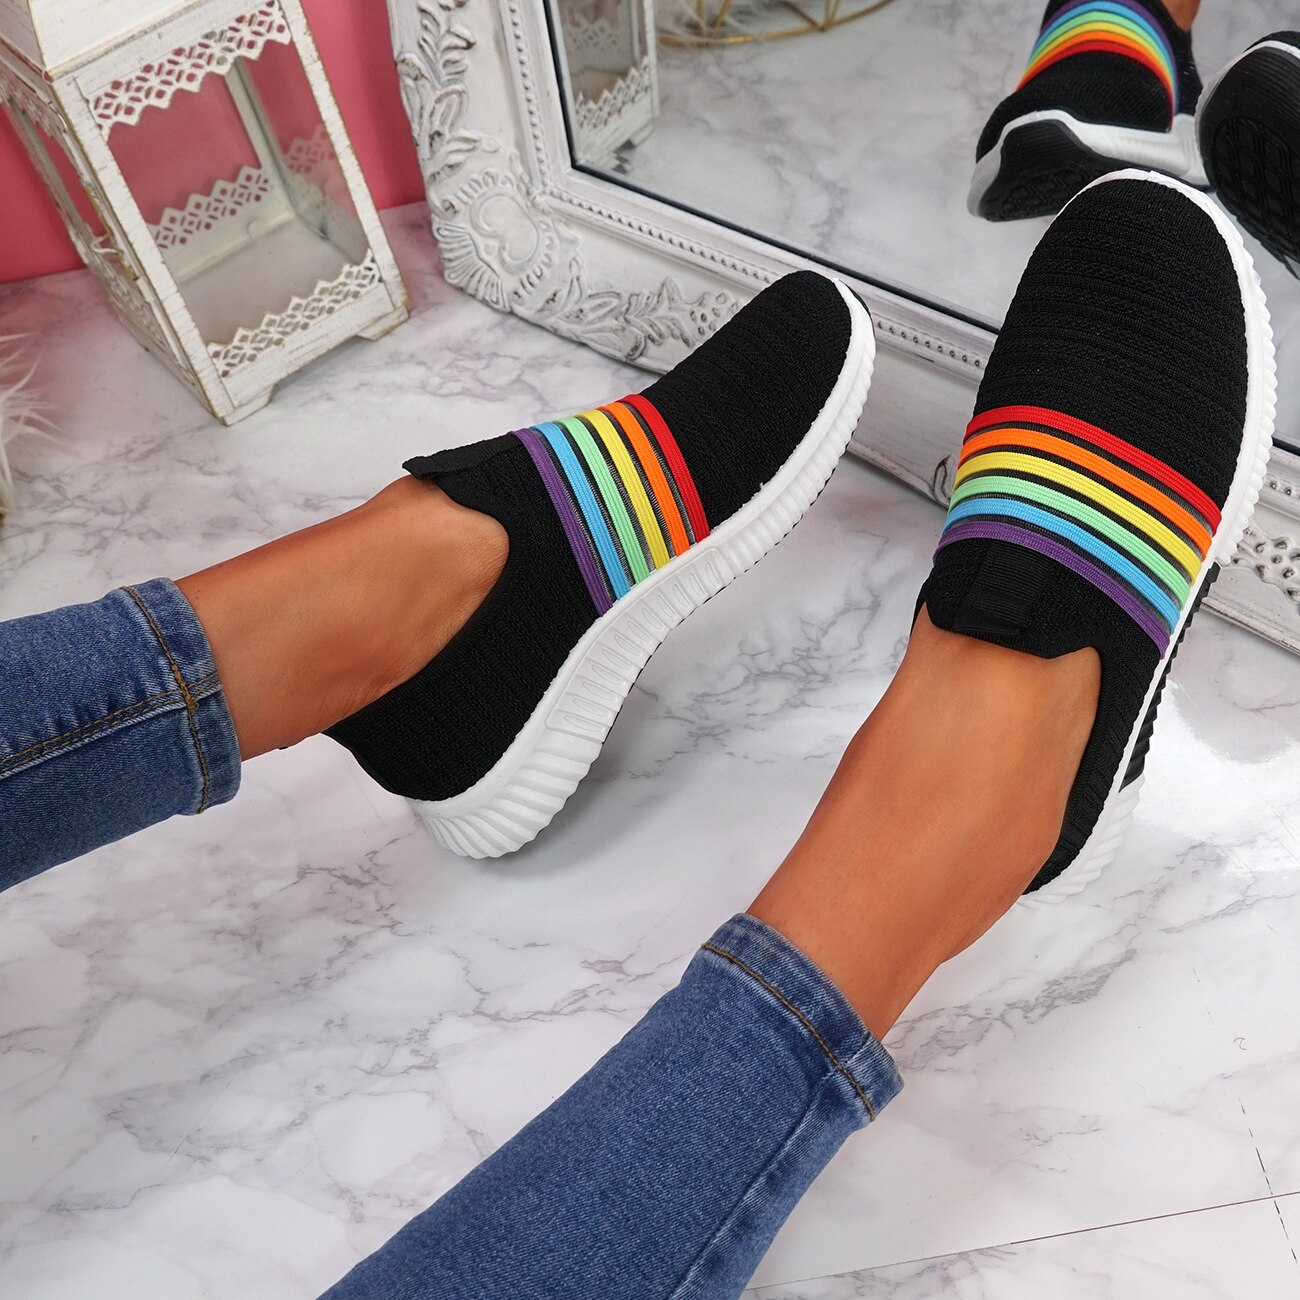 Puimentiua 2020 Women Sneakers Rainbow Knitted Mesh Vulcanize Shoes Leisure Shoes Low-top Summer Casual Ladies Shoes